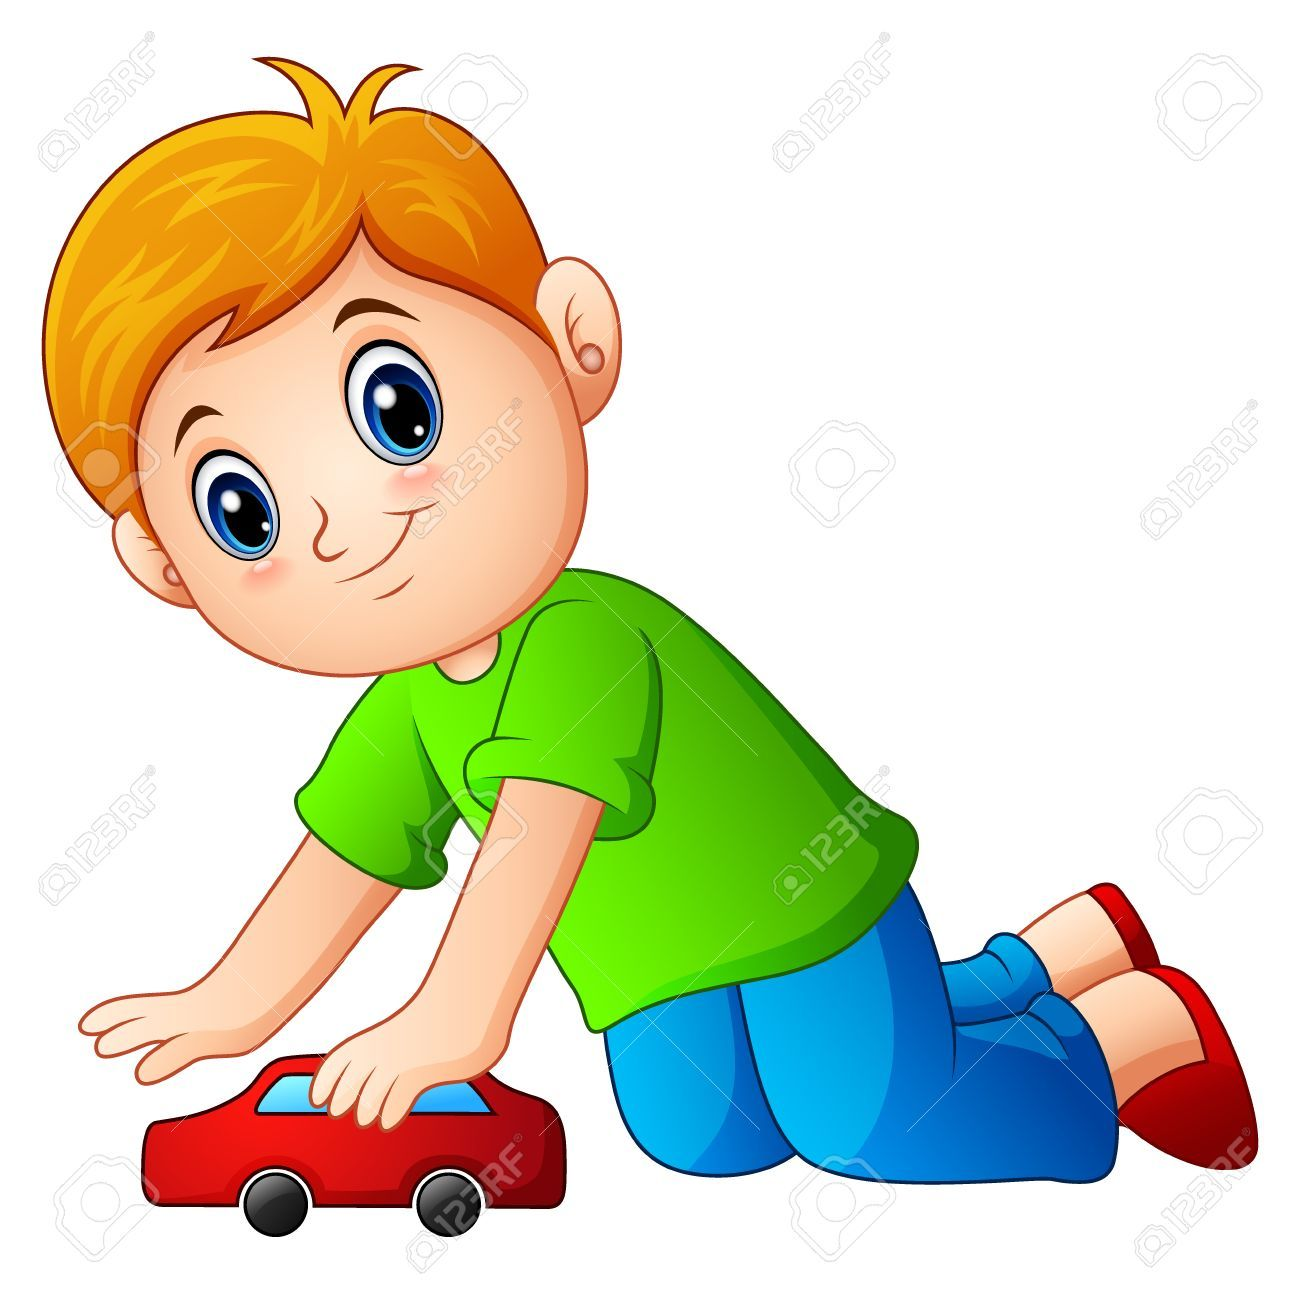 Boy playing with toys clipart 7 » Clipart Portal.